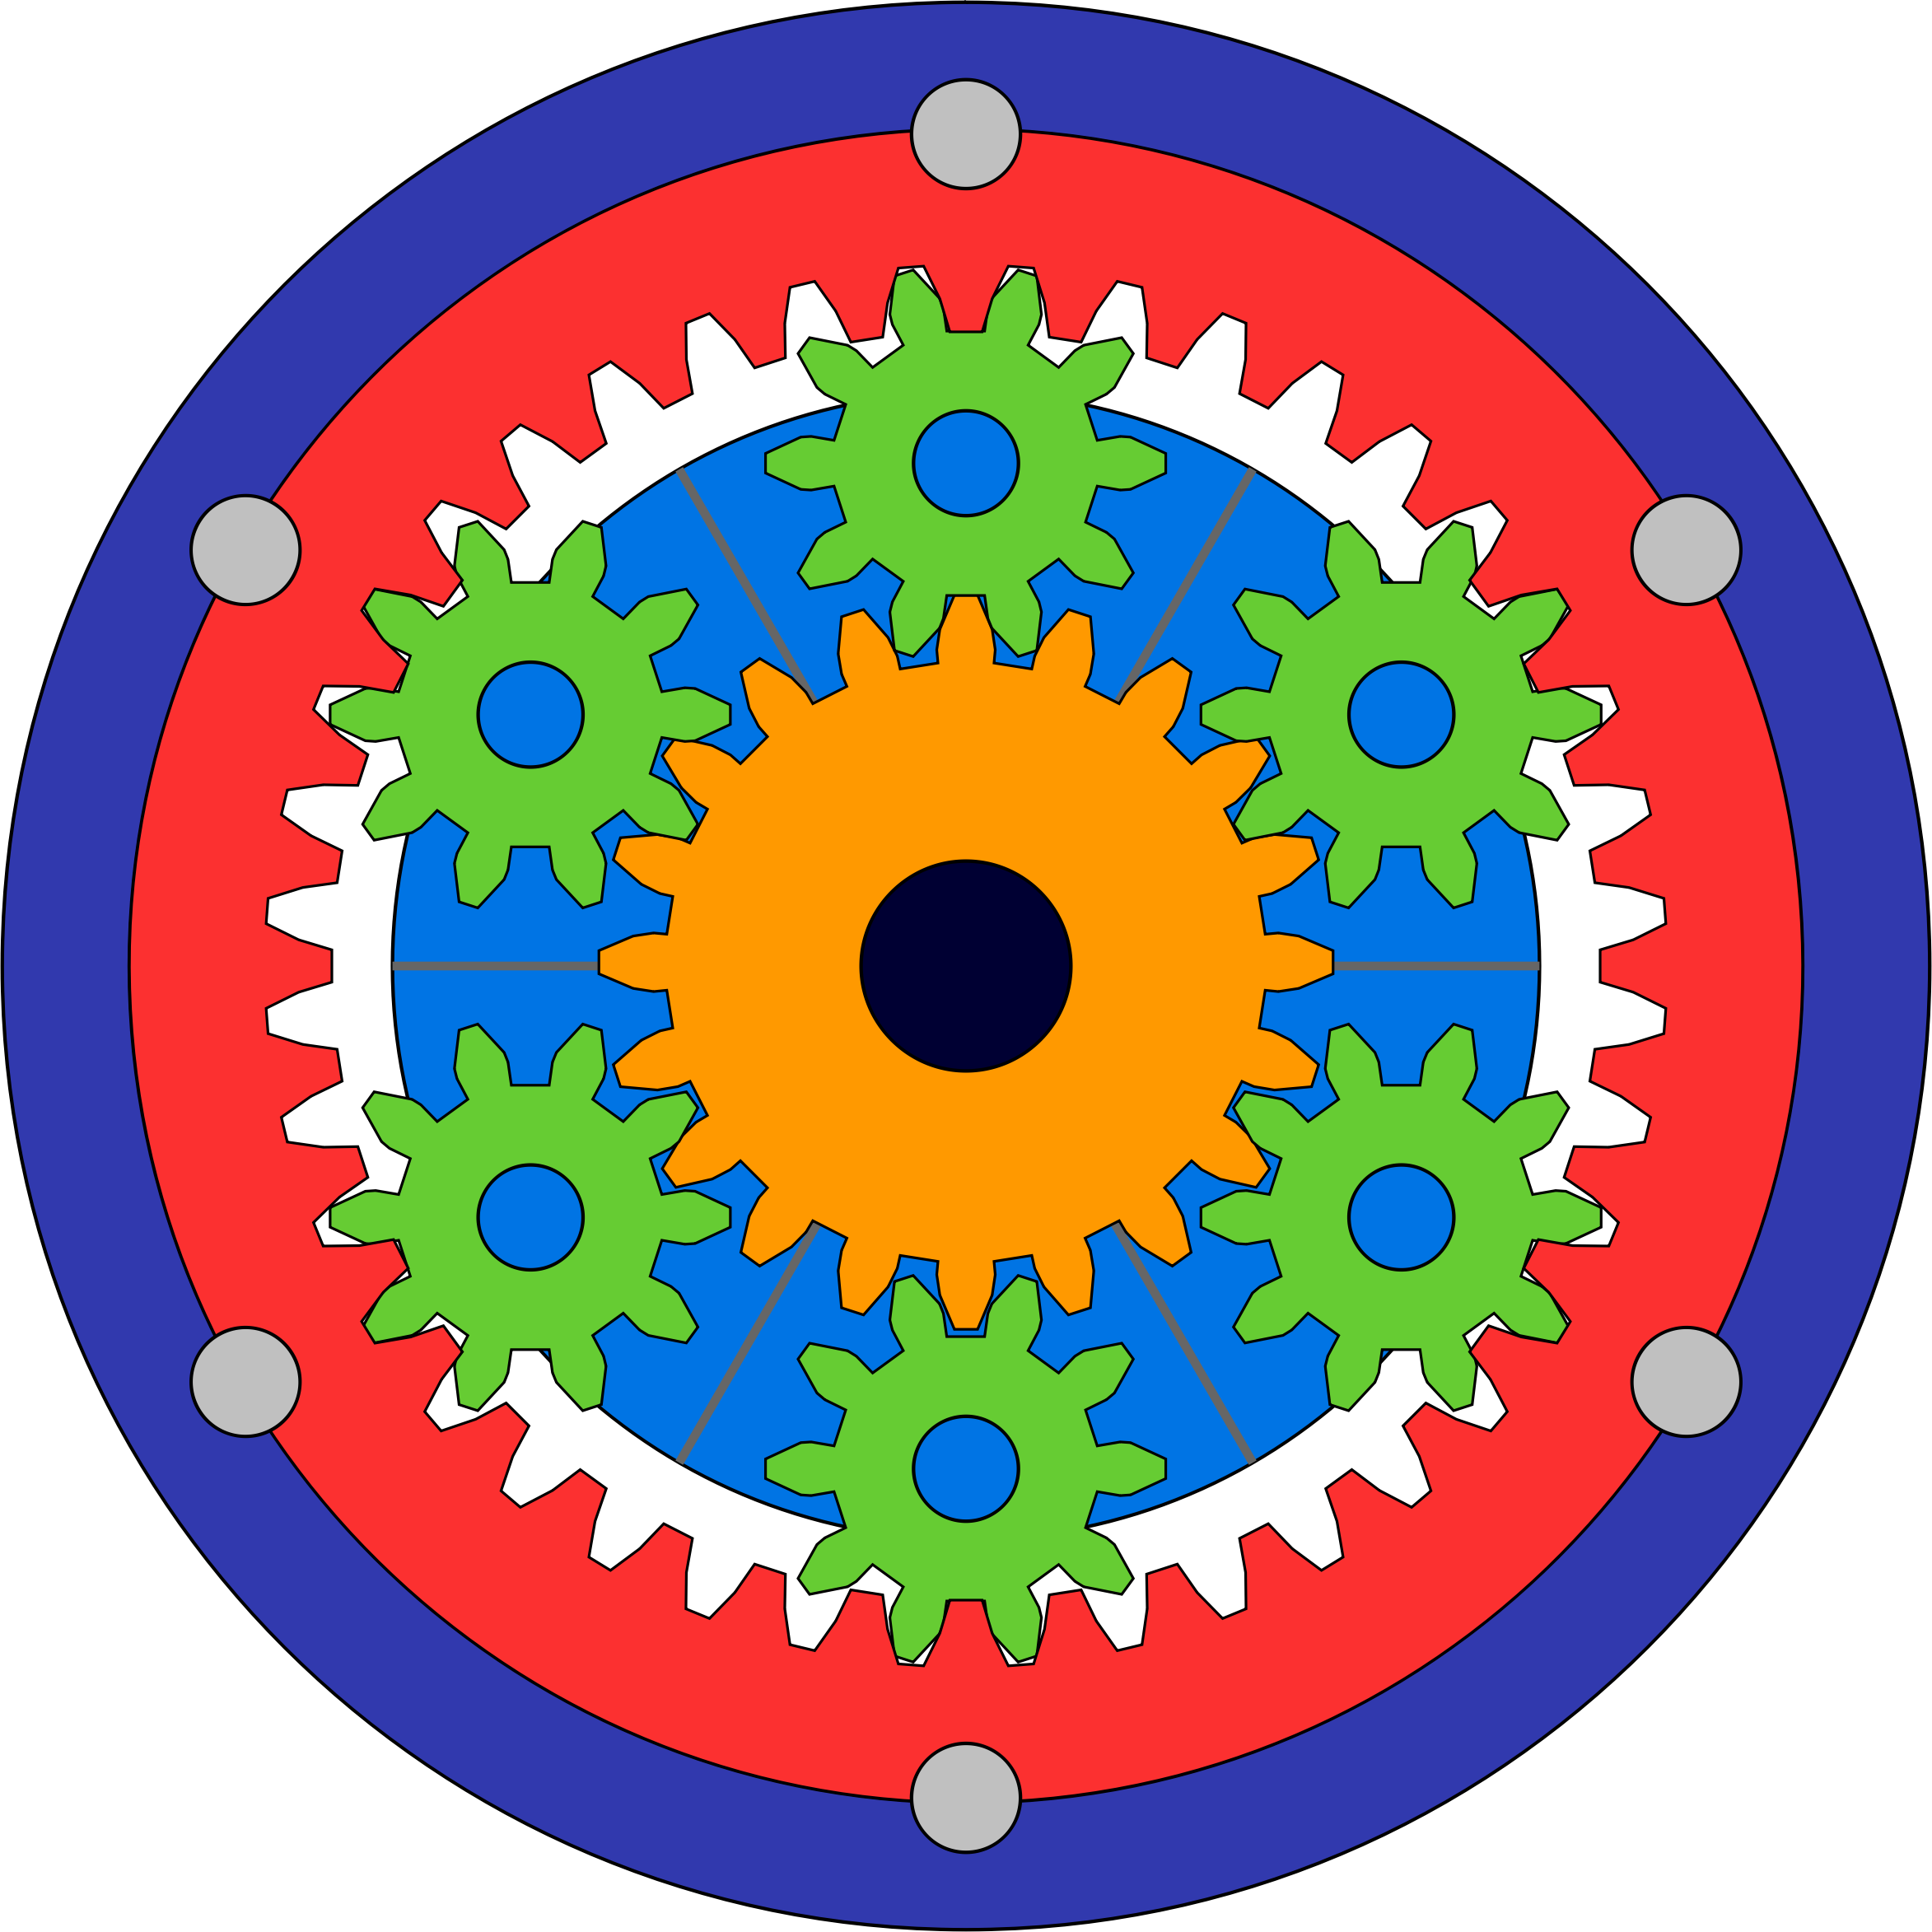 Gear set big image. Gears clipart animated